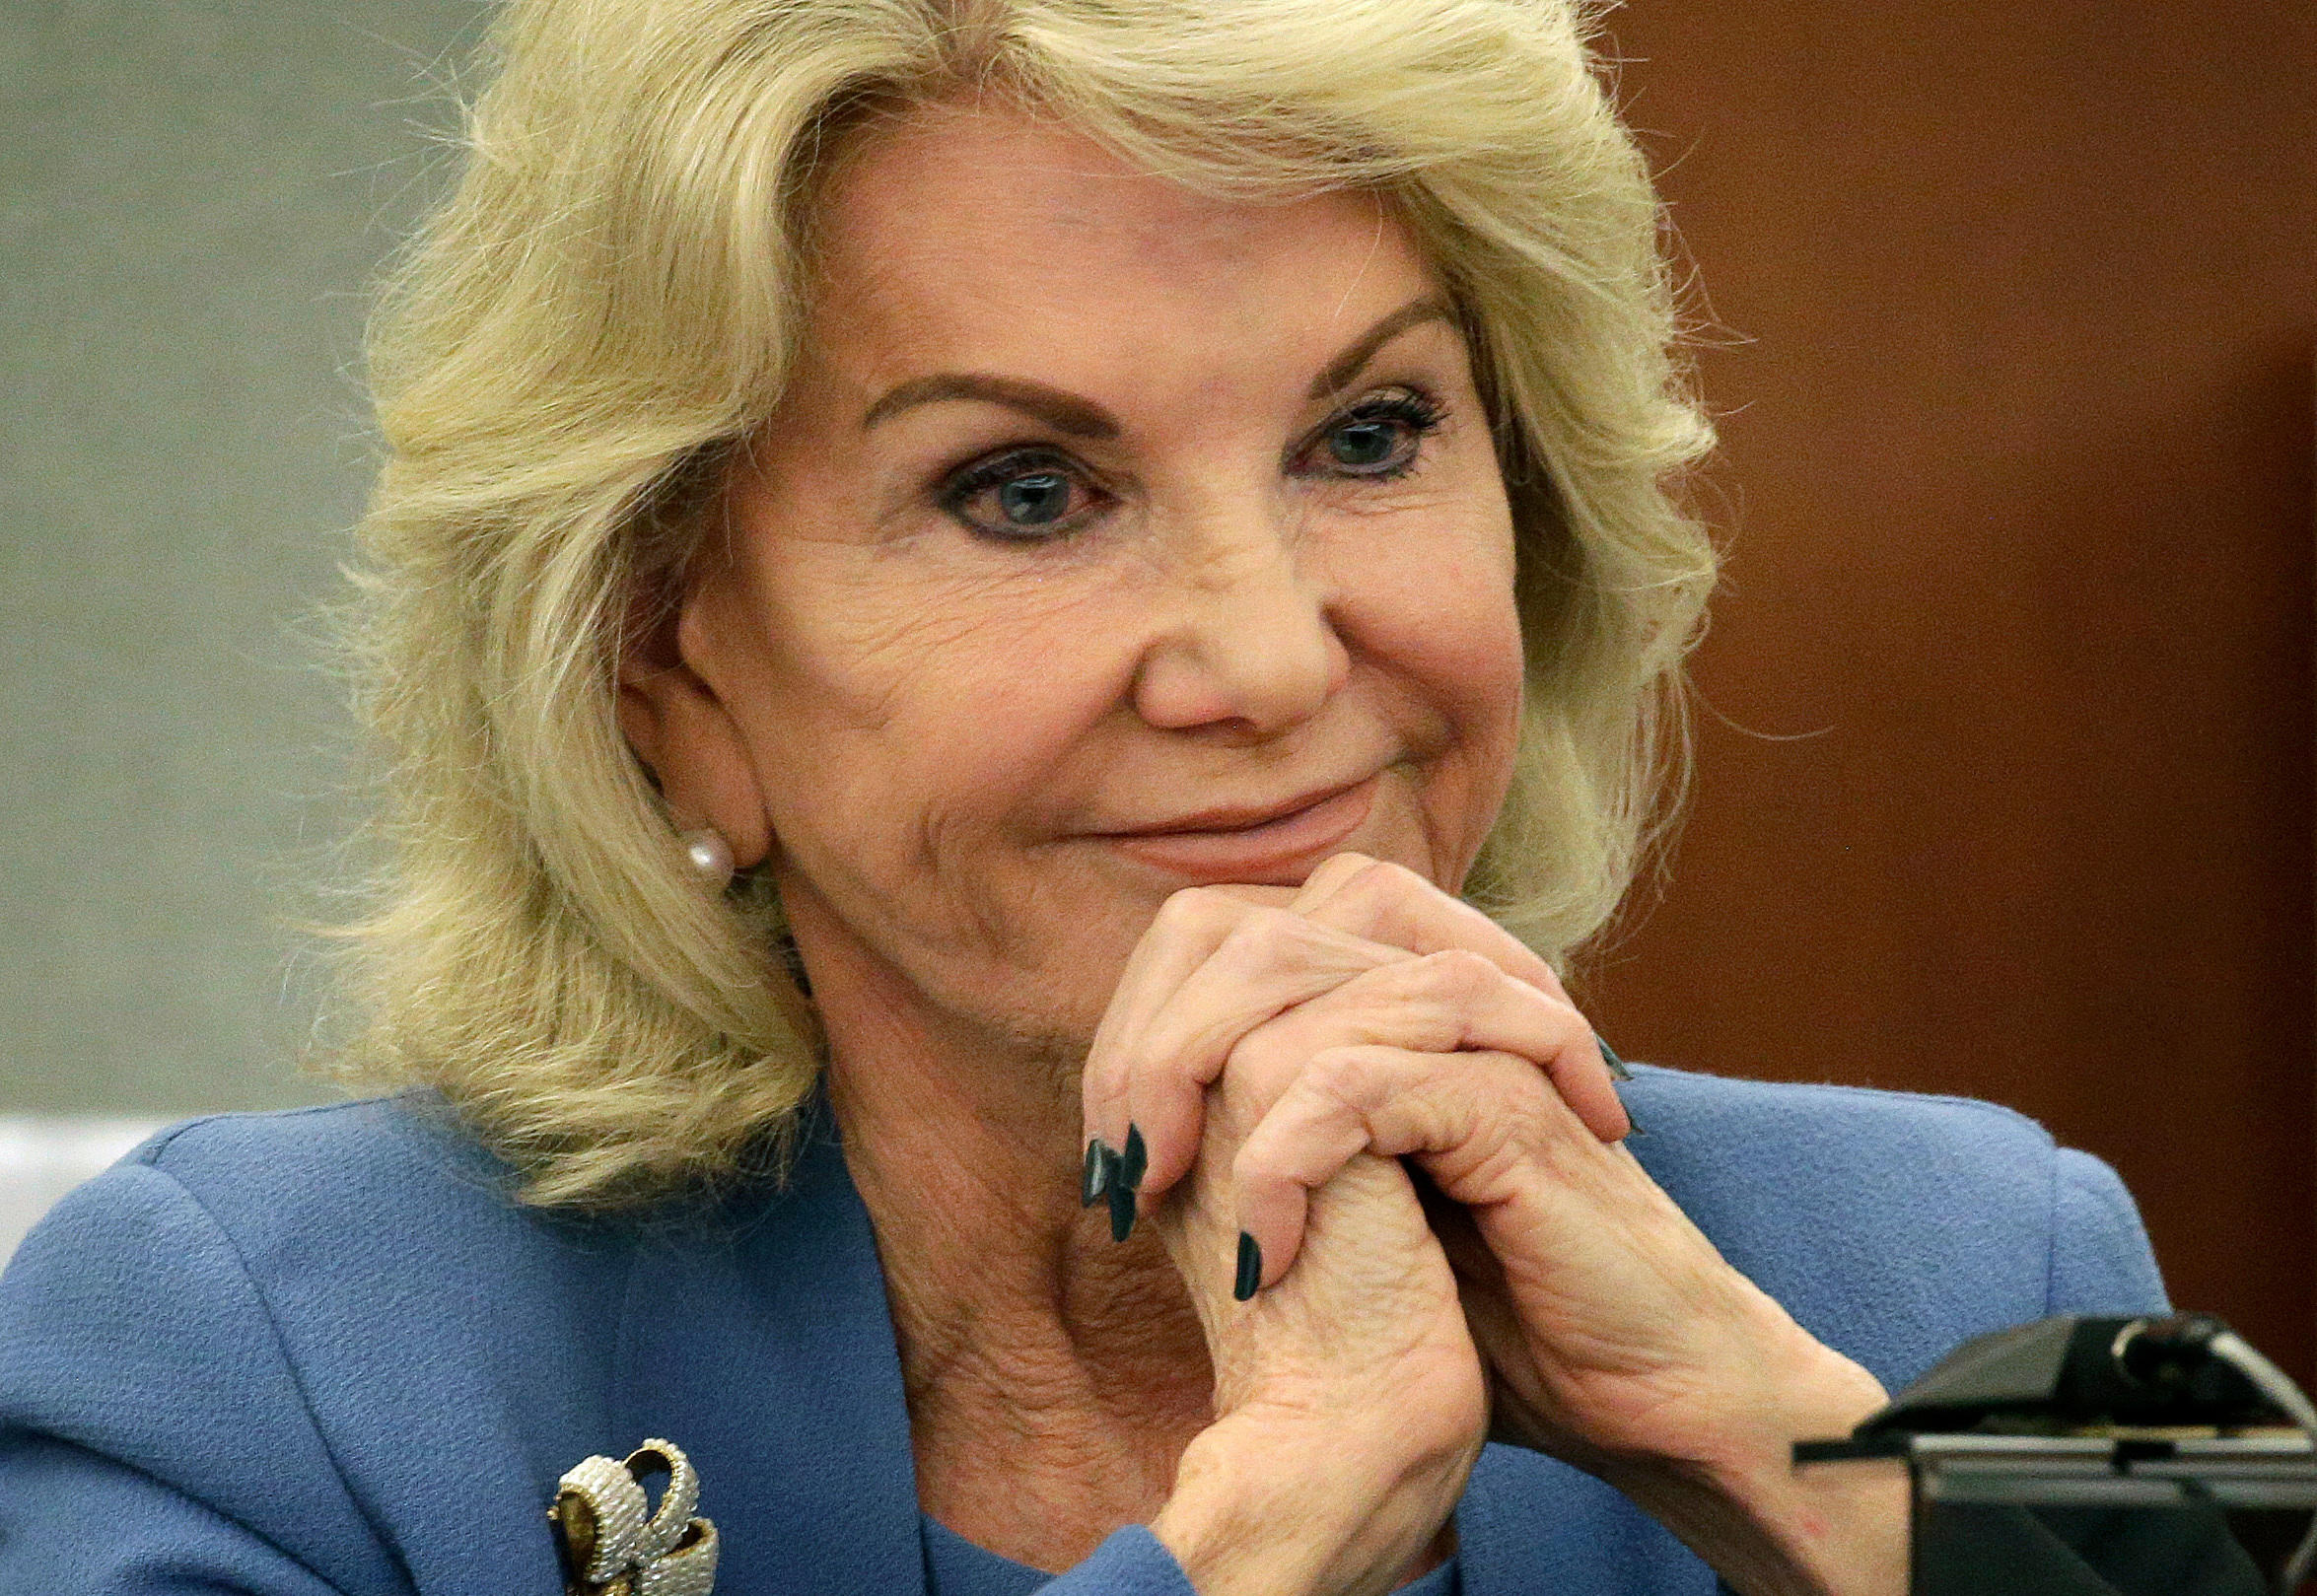 Elaine Wynn wants Wynn Resorts shake-up